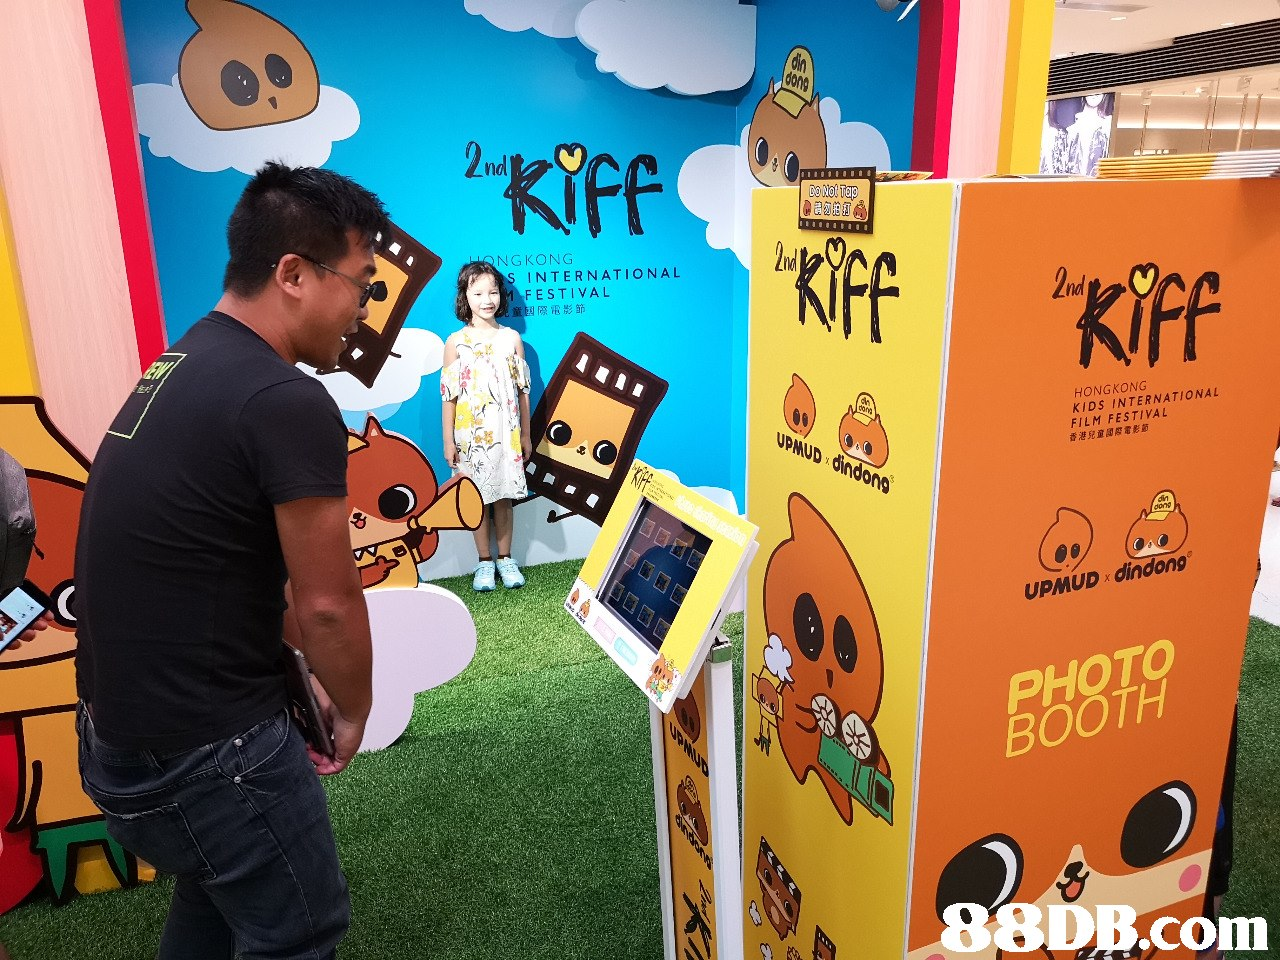 2nd NGKONG INTERNATIONAL FESTIVA L 童 電影節 HONGKONG KIDS INTERNATIONAL FILM FESTIVAL 香港兒童國際電影節 Up PAİD dons PHOTO BOOTH 88DB.com  product